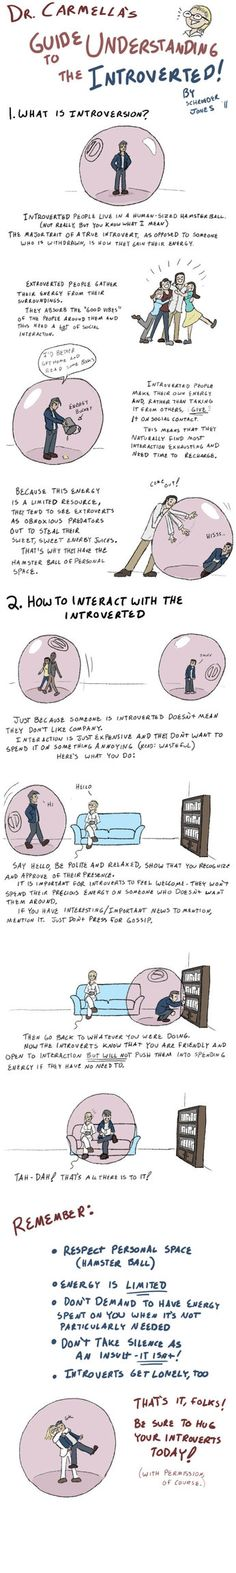 This is brilliant! How to Live with Introverts by =SchroJones on deviantART